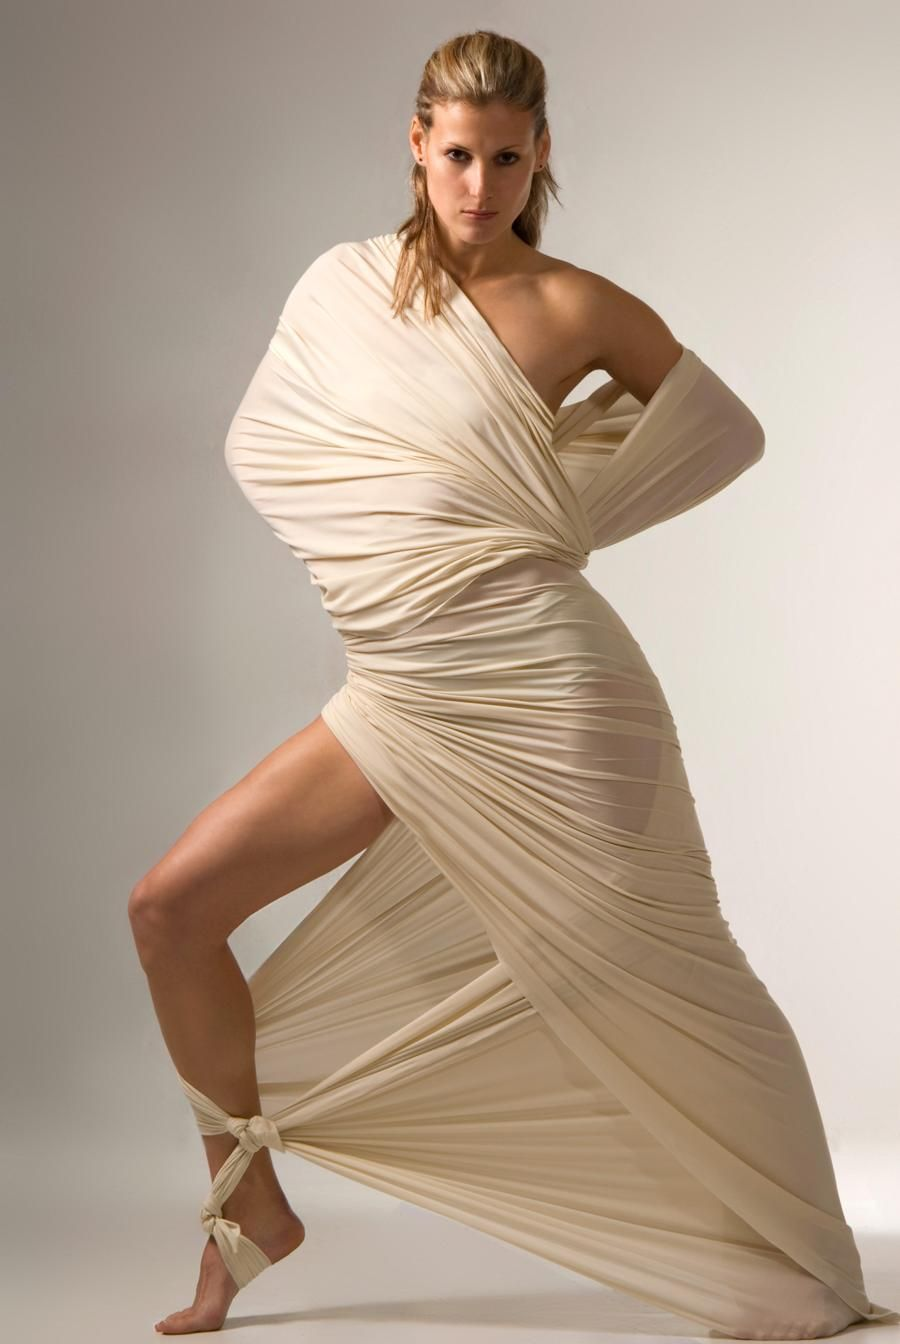 Toga costumes thatll make women look hotter than the sun toga toga costumes thatll make women look hotter than the sun roman costumesdiy solutioingenieria Images